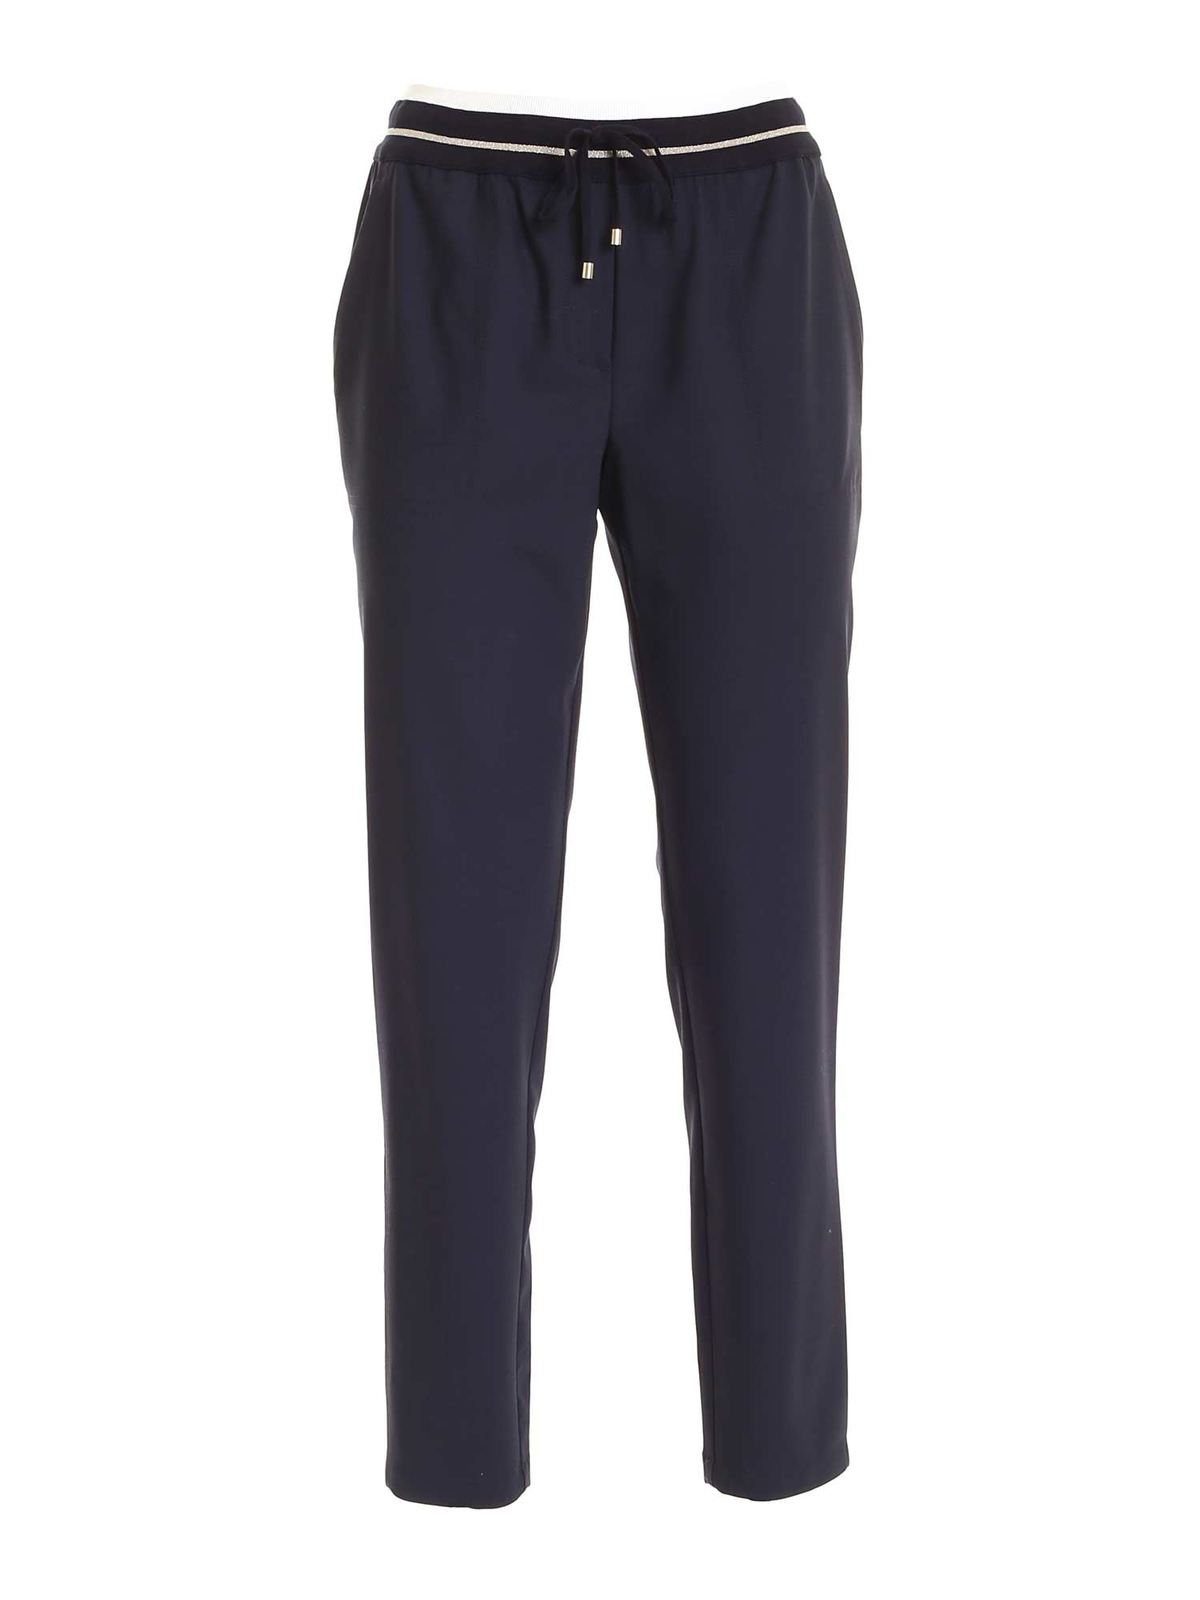 Lorena Antoniazzi KNIT DETAIL PANTS IN BLUE